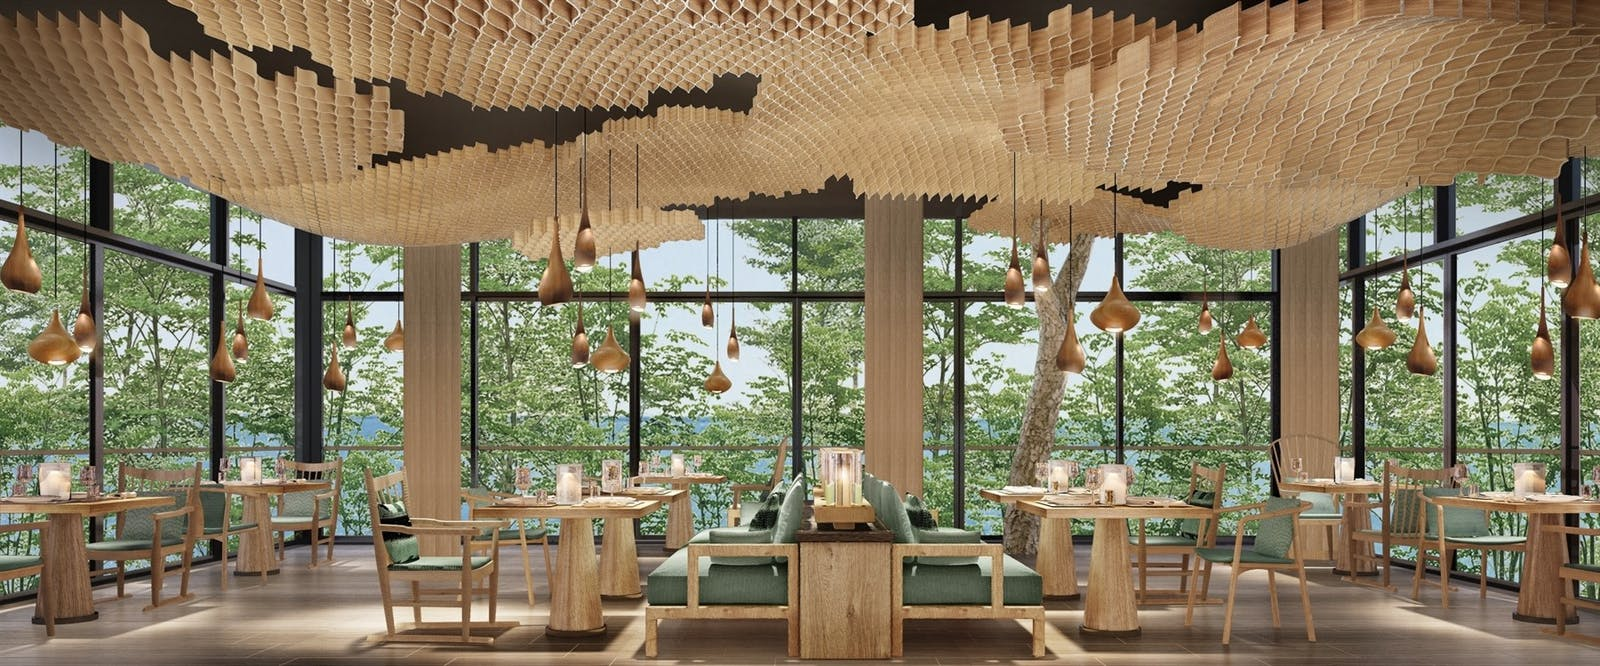 Tree Restaurant at Six Senses Krabey Island, Cambodia